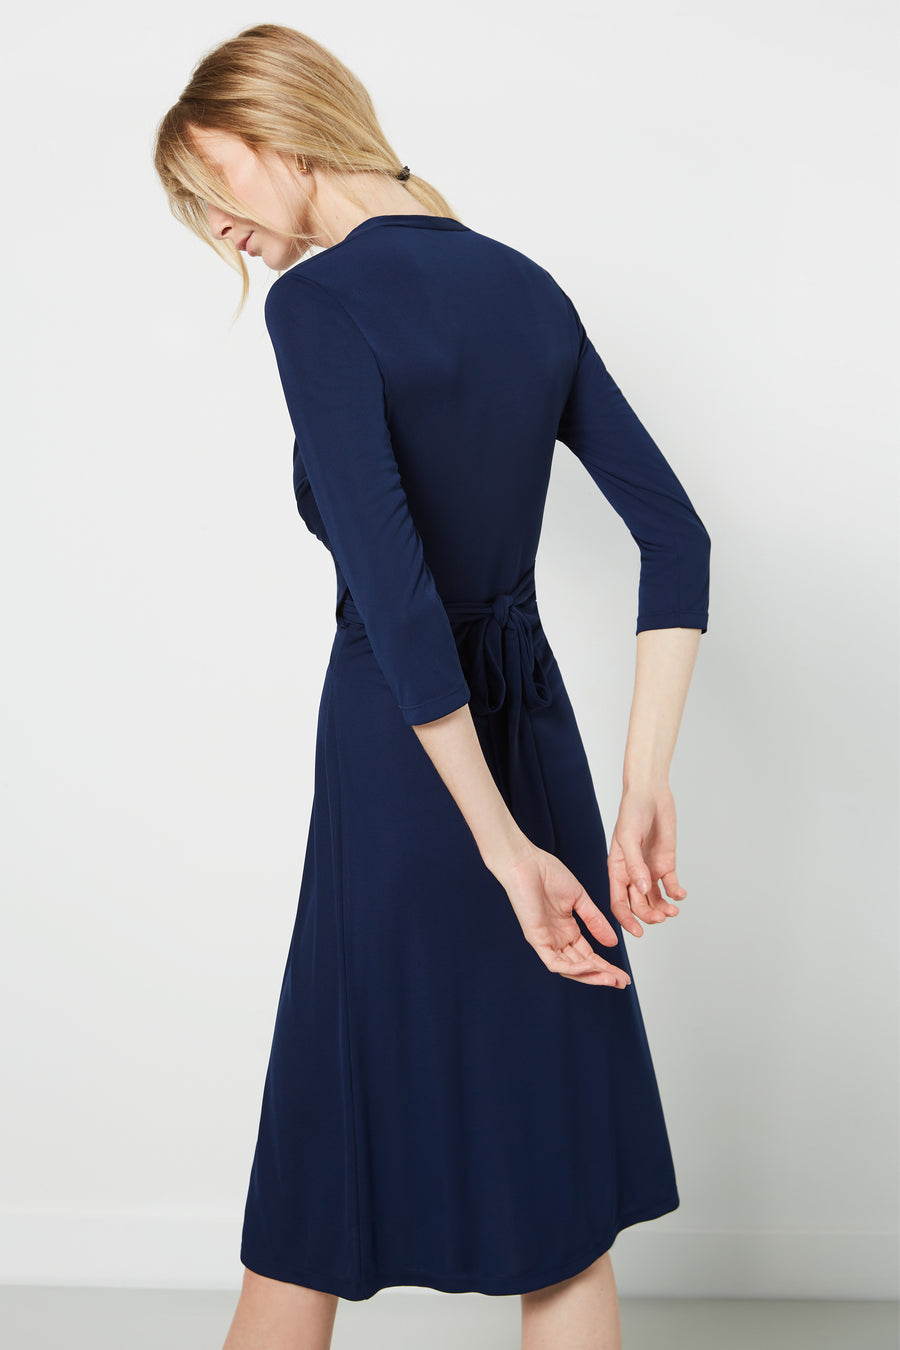 Radley Navy Dress